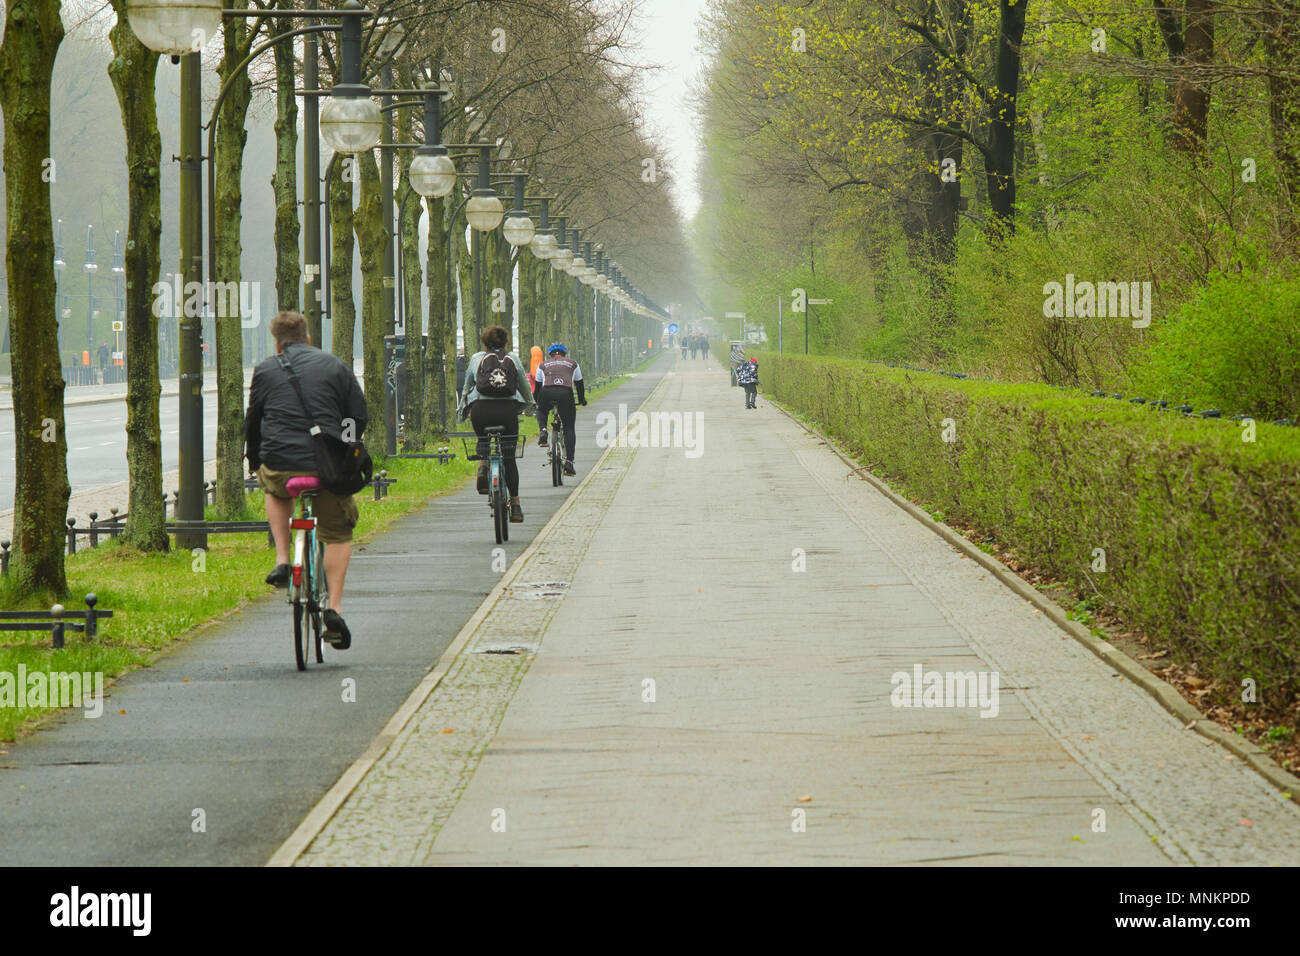 Berlin, Germany - April 14, 2018: Bicycle lane with bicyclists and sidewalk along 17th of June Street and Rose garden im Tiergarten, Berlin Stock Photo